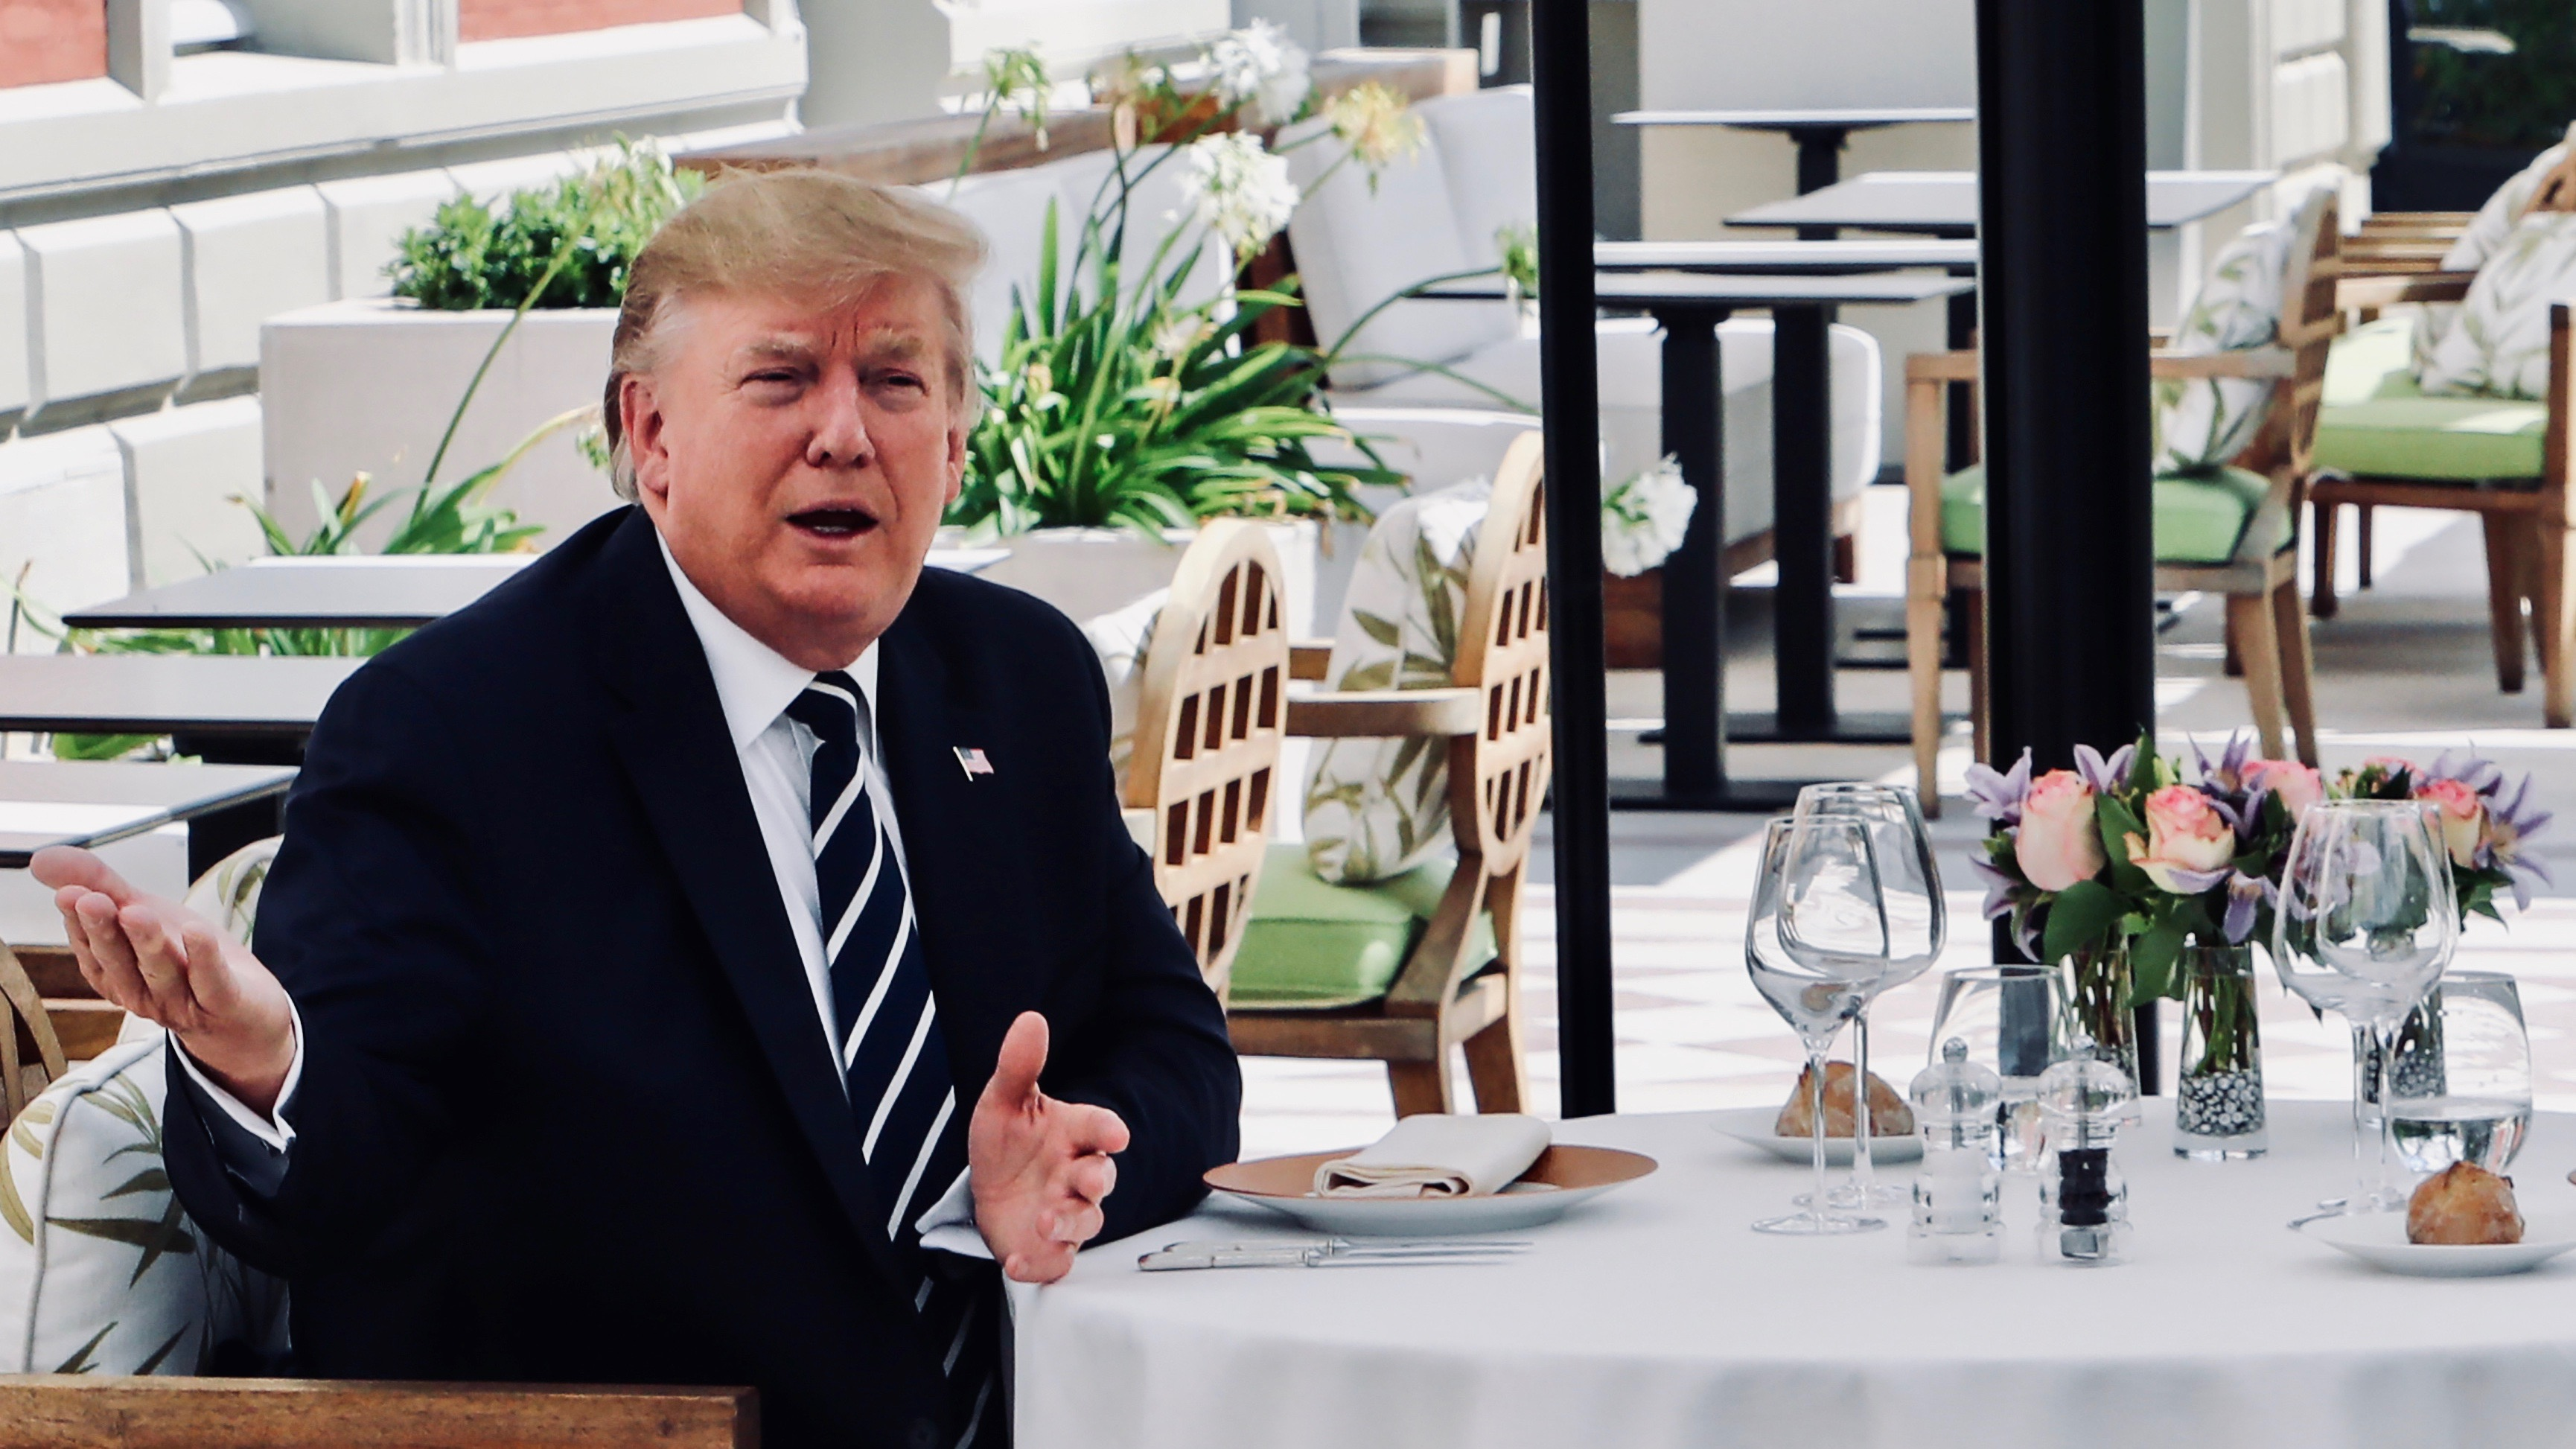 U.S. President Trump sits to lunch with French President Macron at Hotel du Palais in Biarritz.